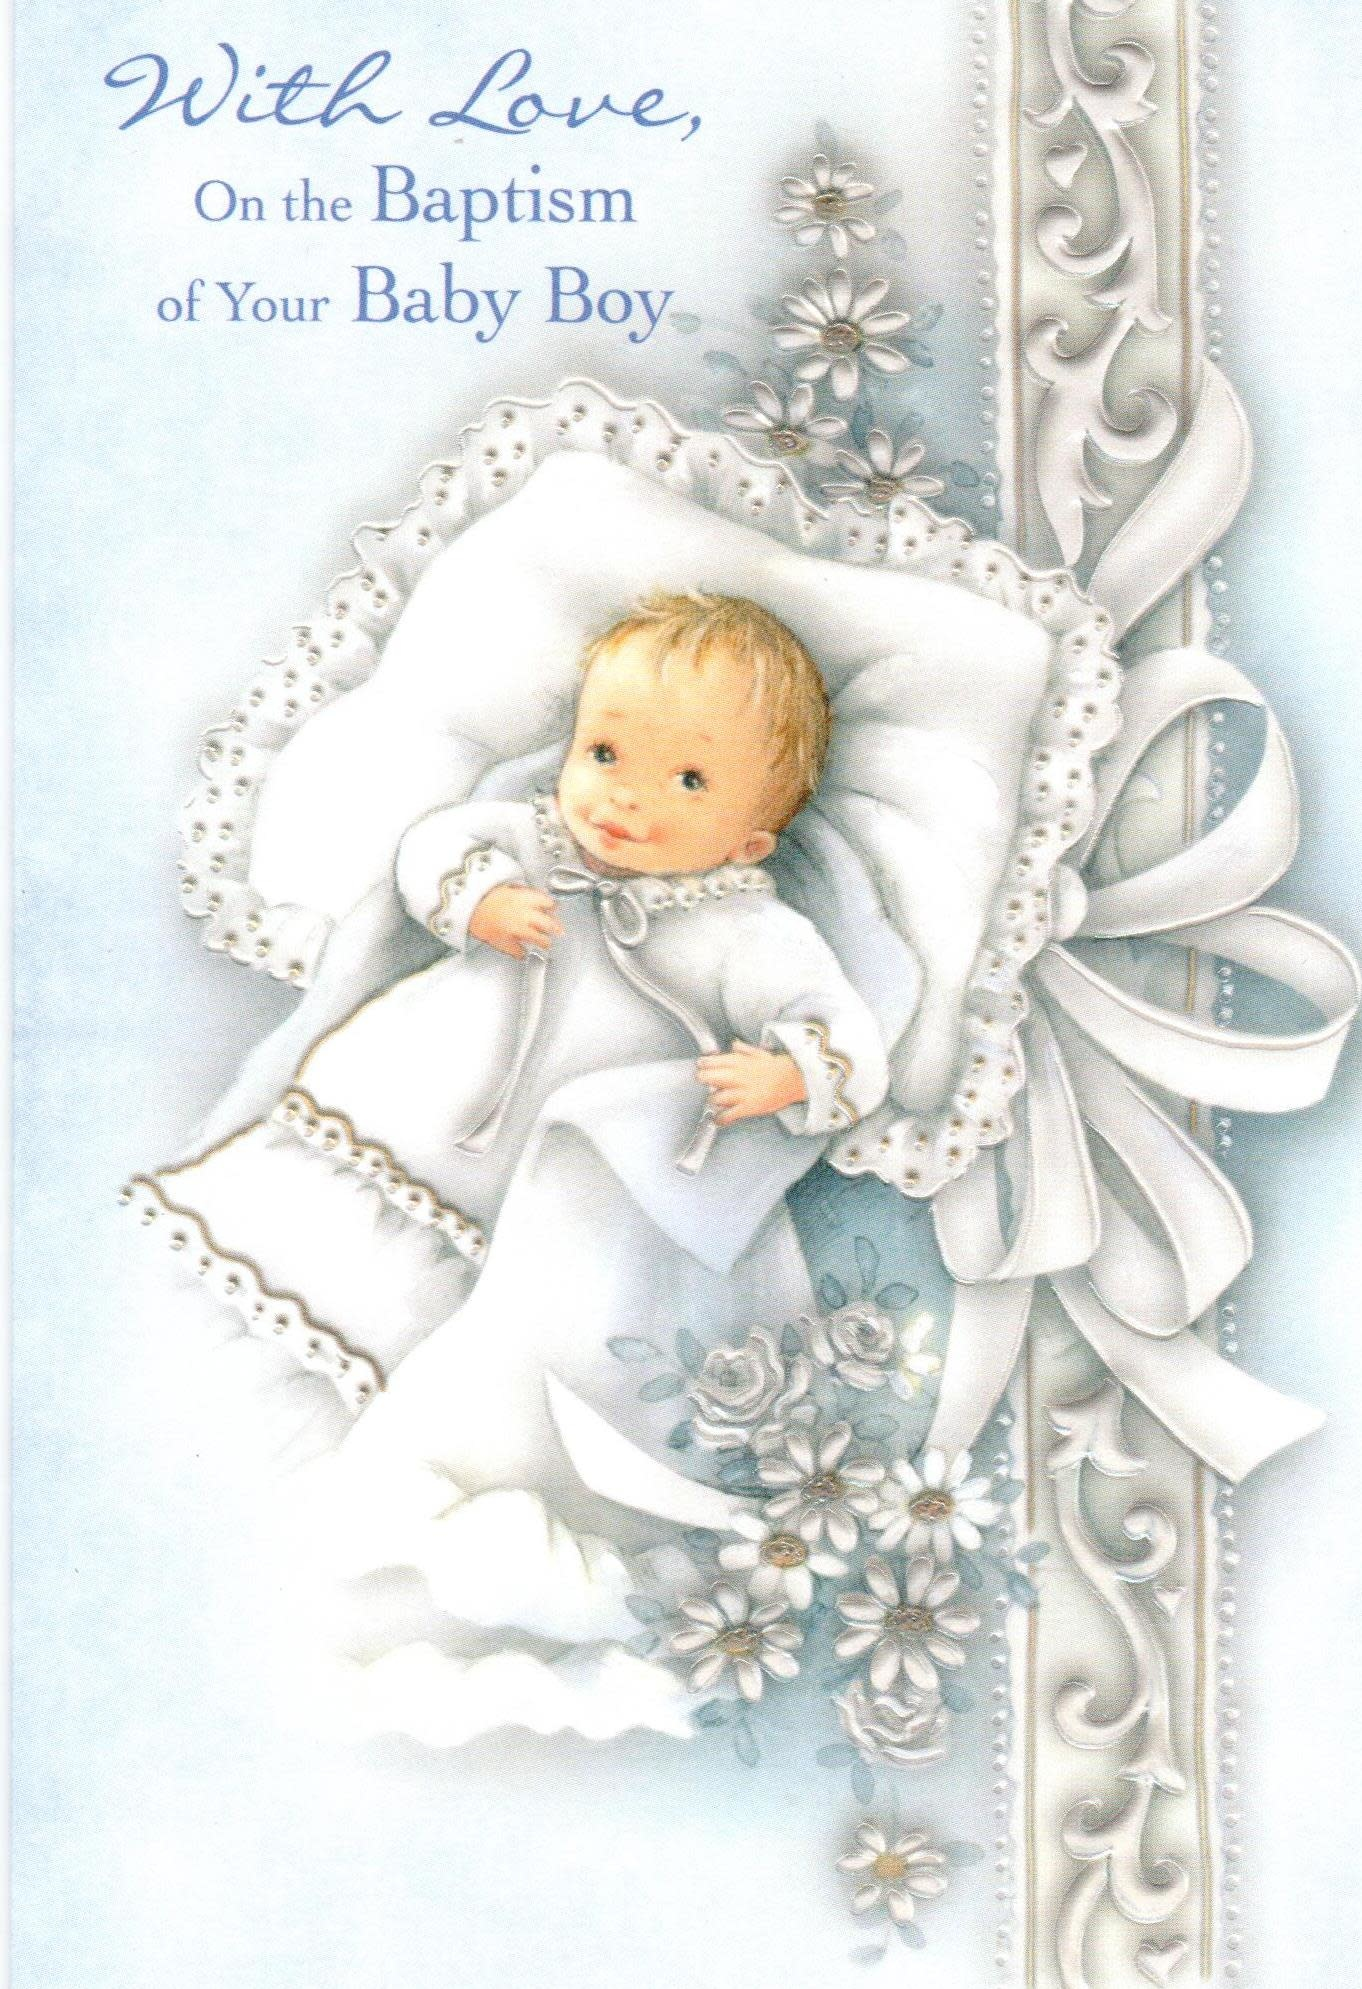 With Love, On the Baptism of Your Baby Boy